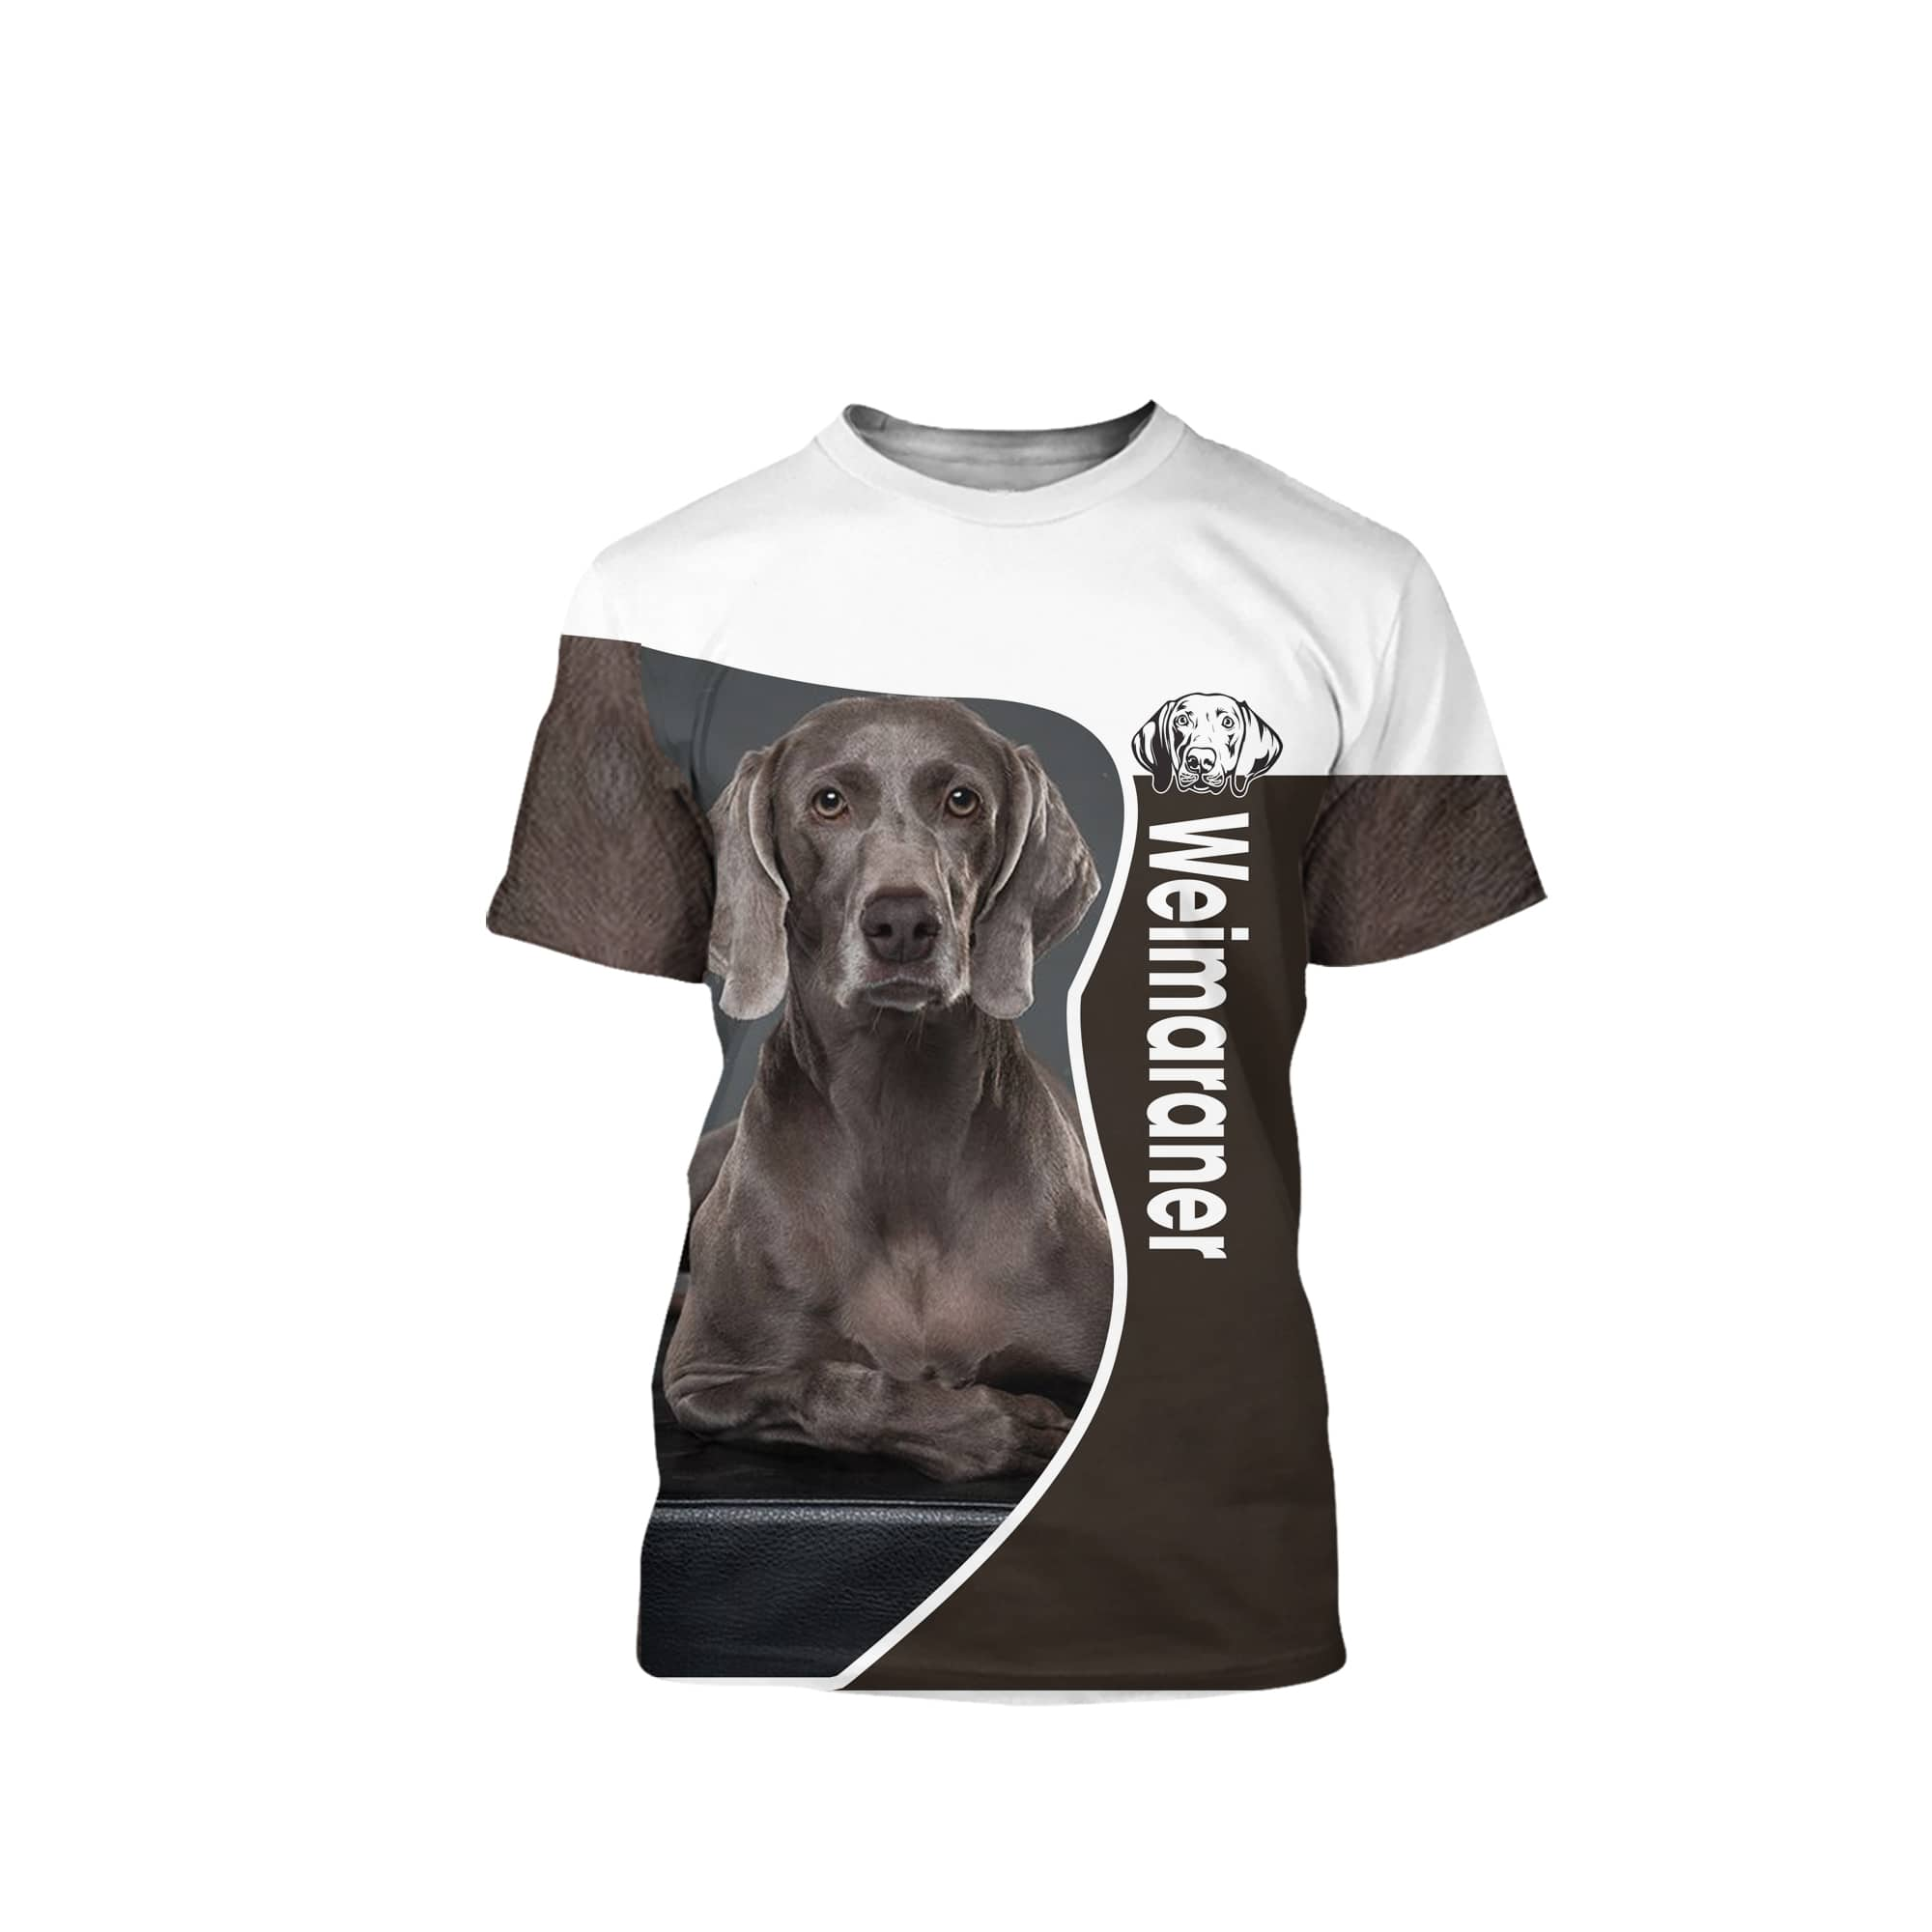 Weimaraner 3D All Over Printed Shirts For Men And Women 14